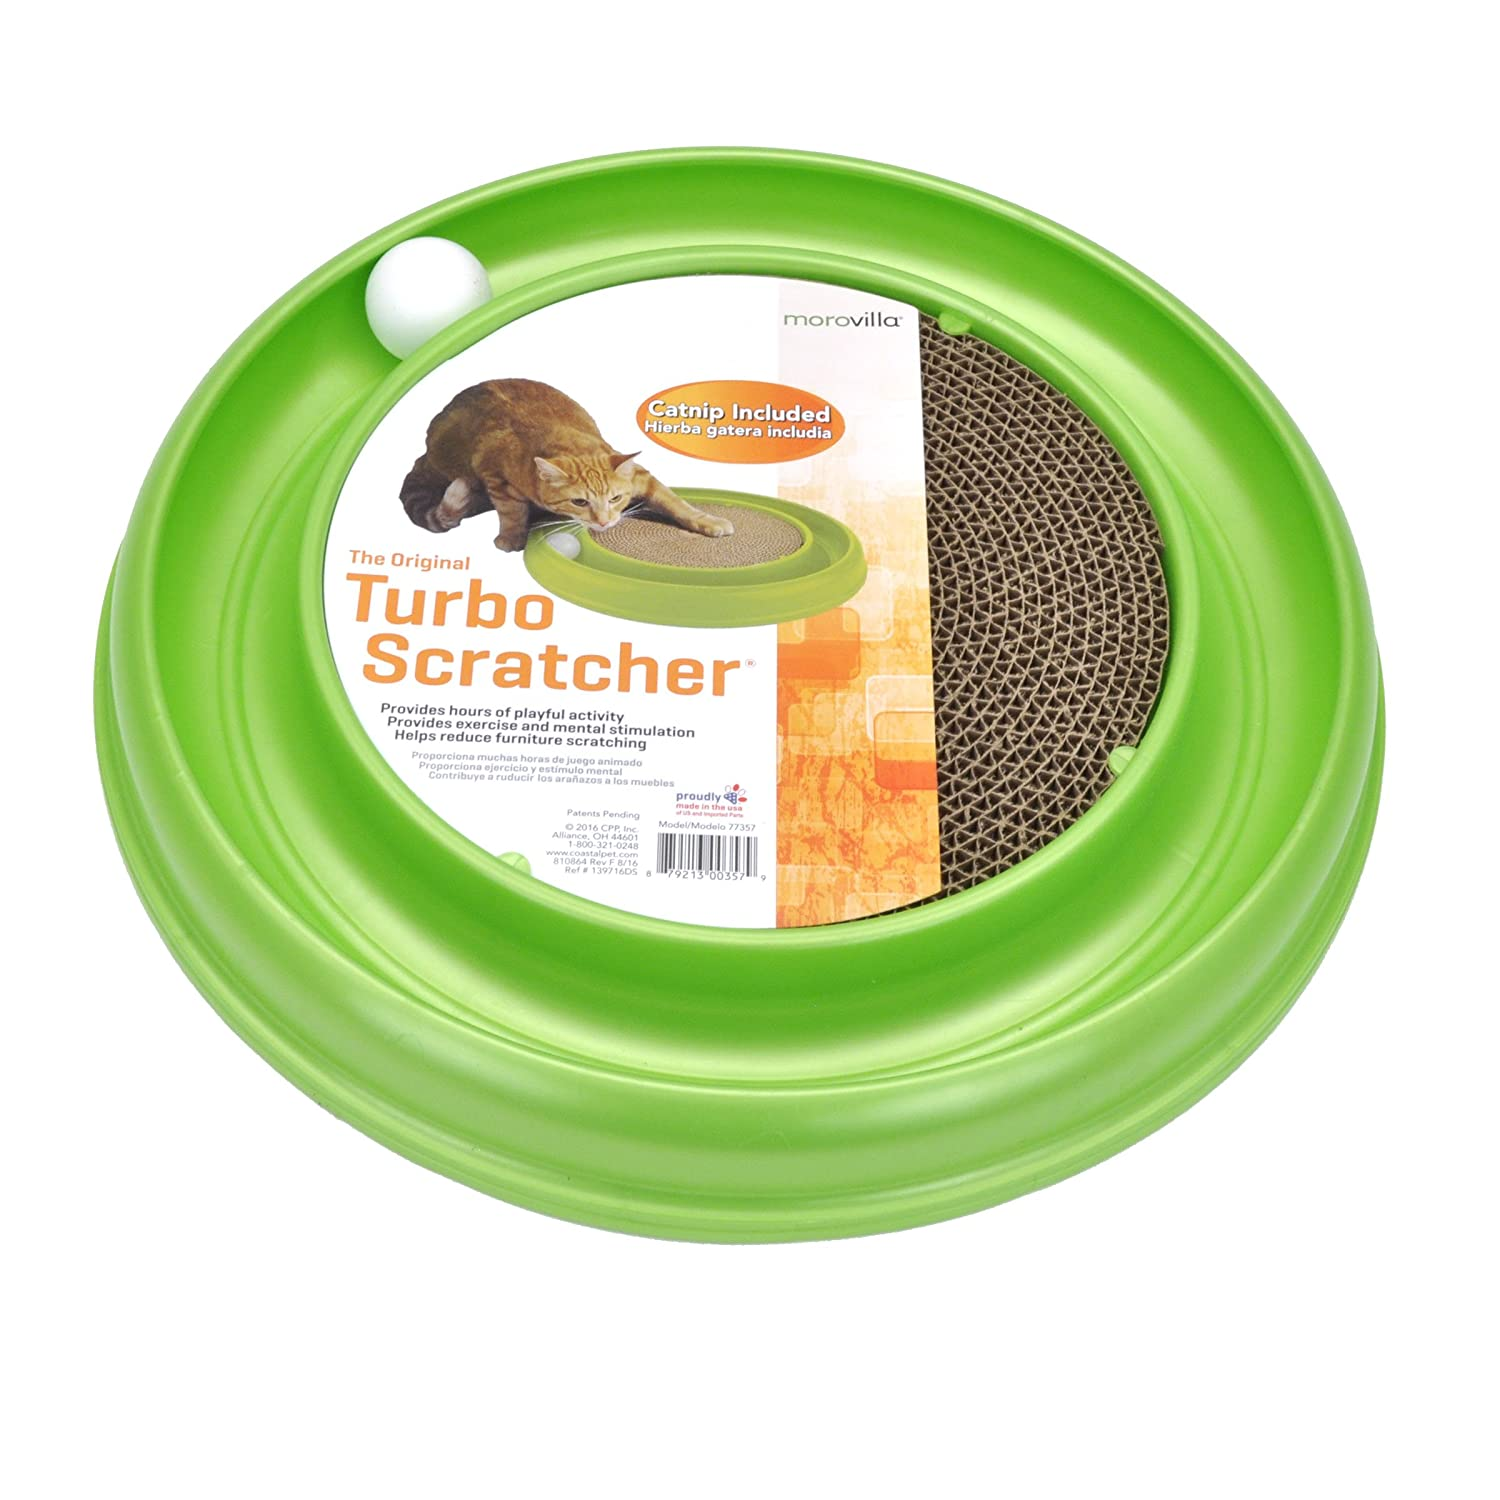 Amazon.com : Morovilla Turbo Scratcher Interactive Cat Toy And Scratcher : Pet Supplies